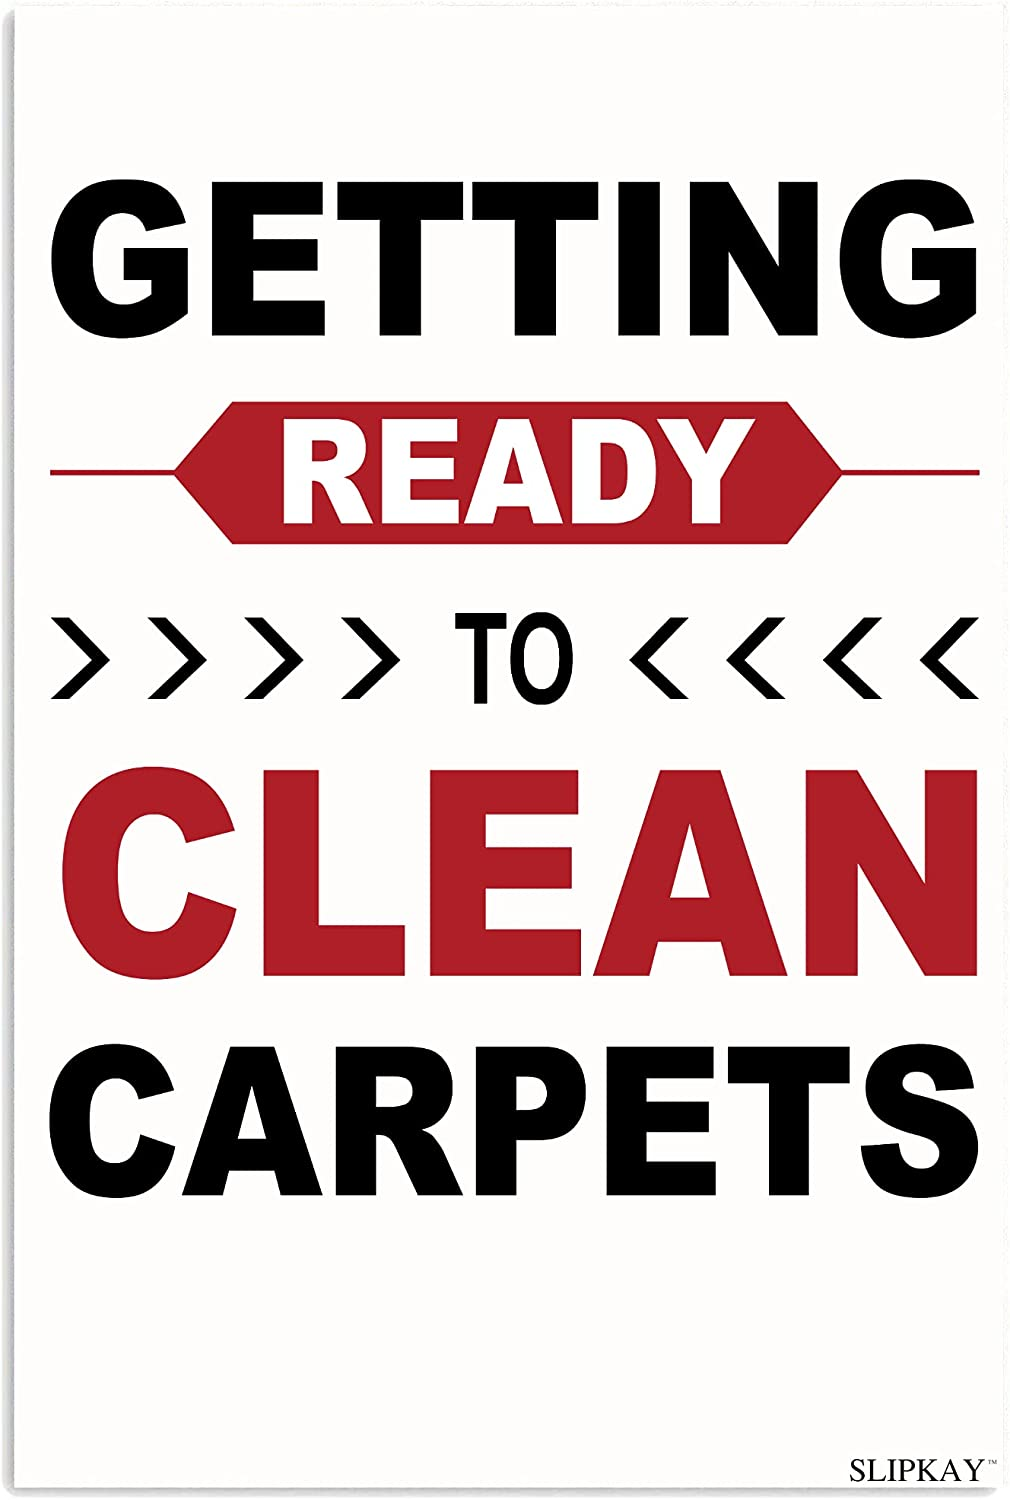 GAMILAN Carpet Cleaner Job 5 popular Getting Ready Carpets Max 44% OFF Wall Clean F to